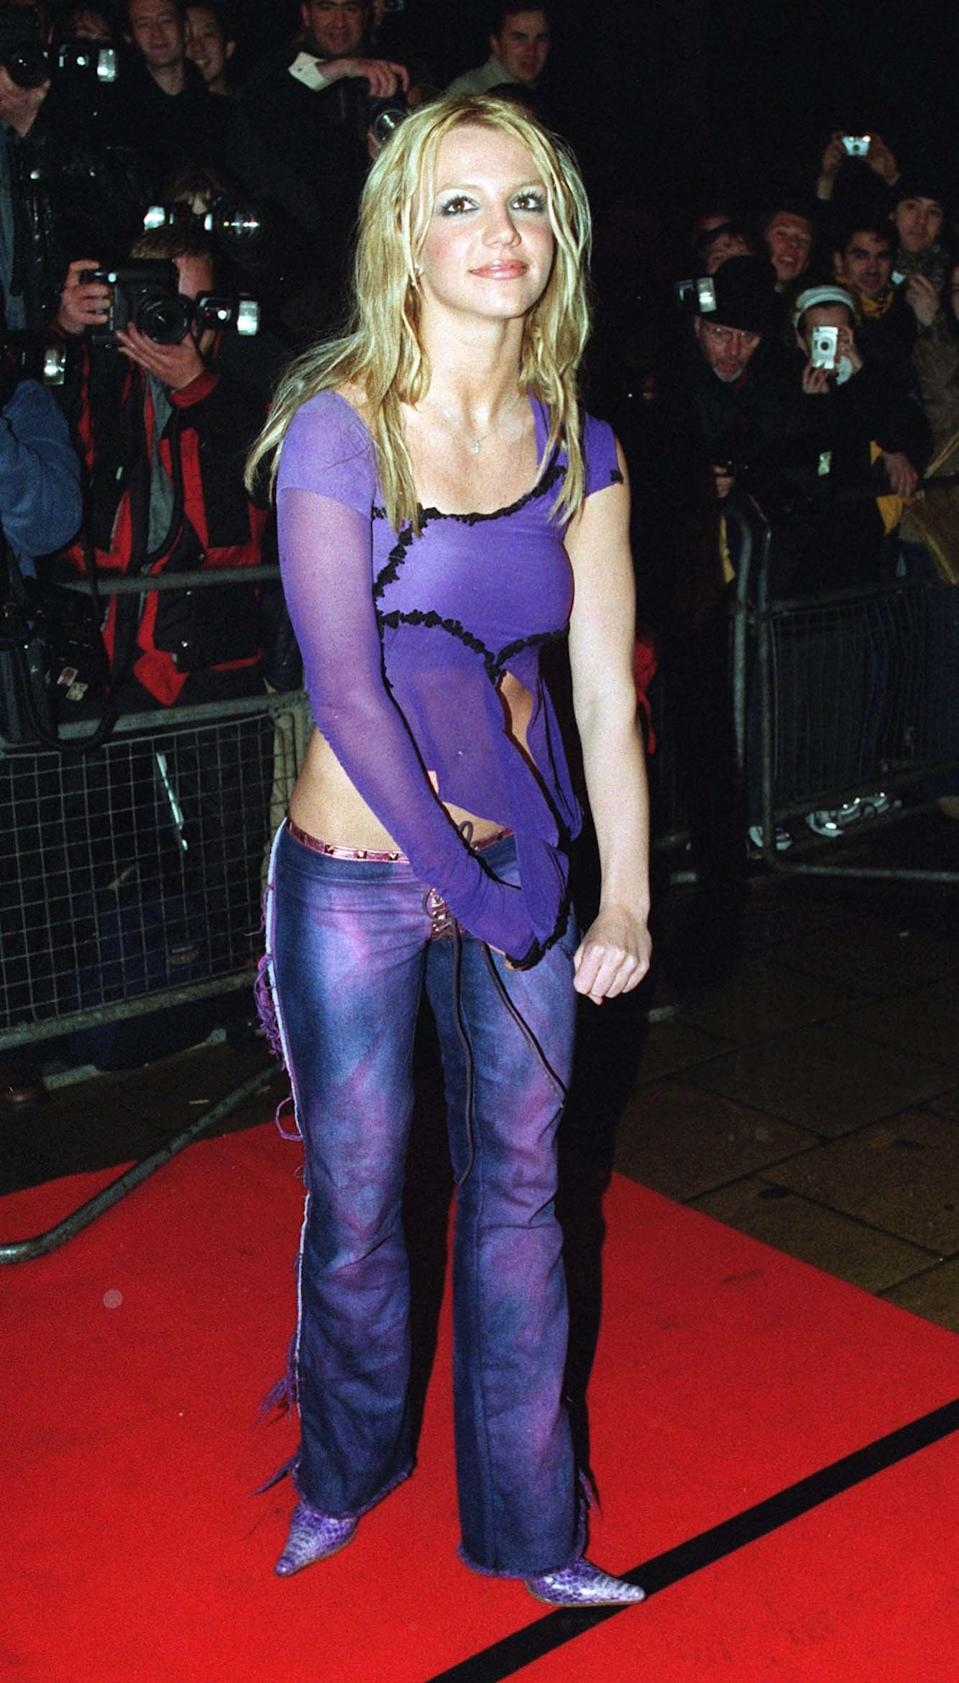 <p>At a party in London wearing a sheer purple cutout top with matching pants and shoes. </p>